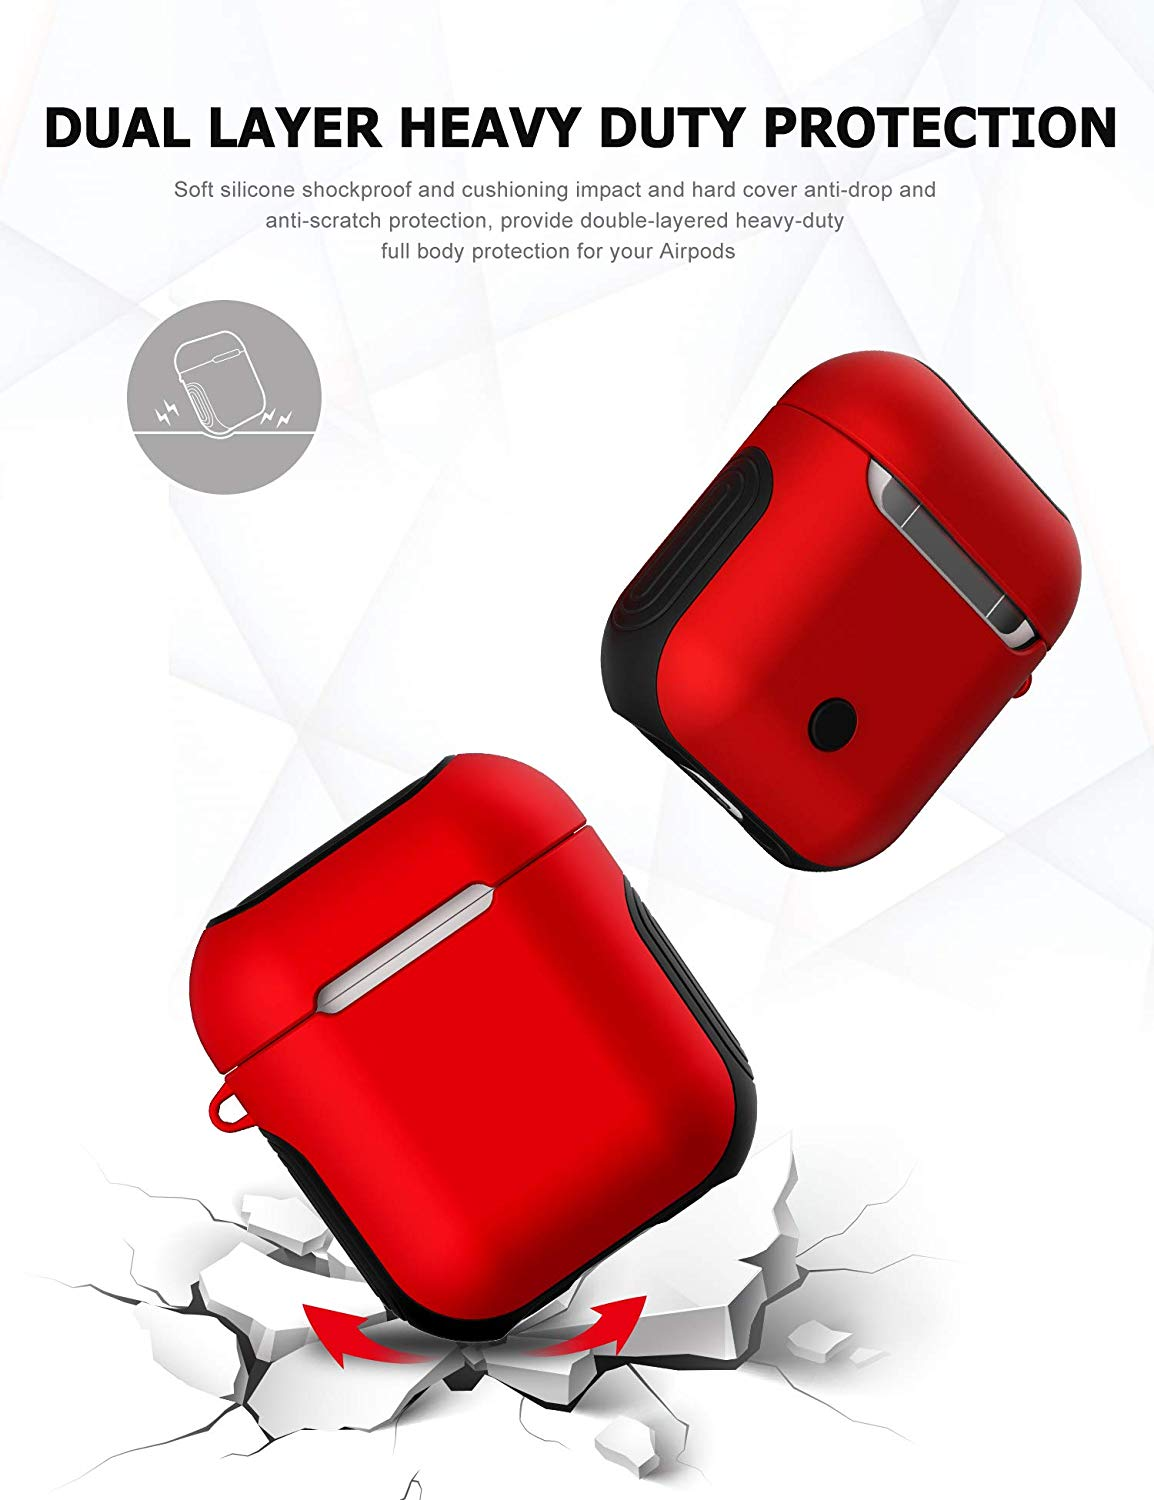 49af3b77bcc Apple Airpods Case Cover, Matte Finish 2 in 1 Protective Cover Shockproof  Design (RED)